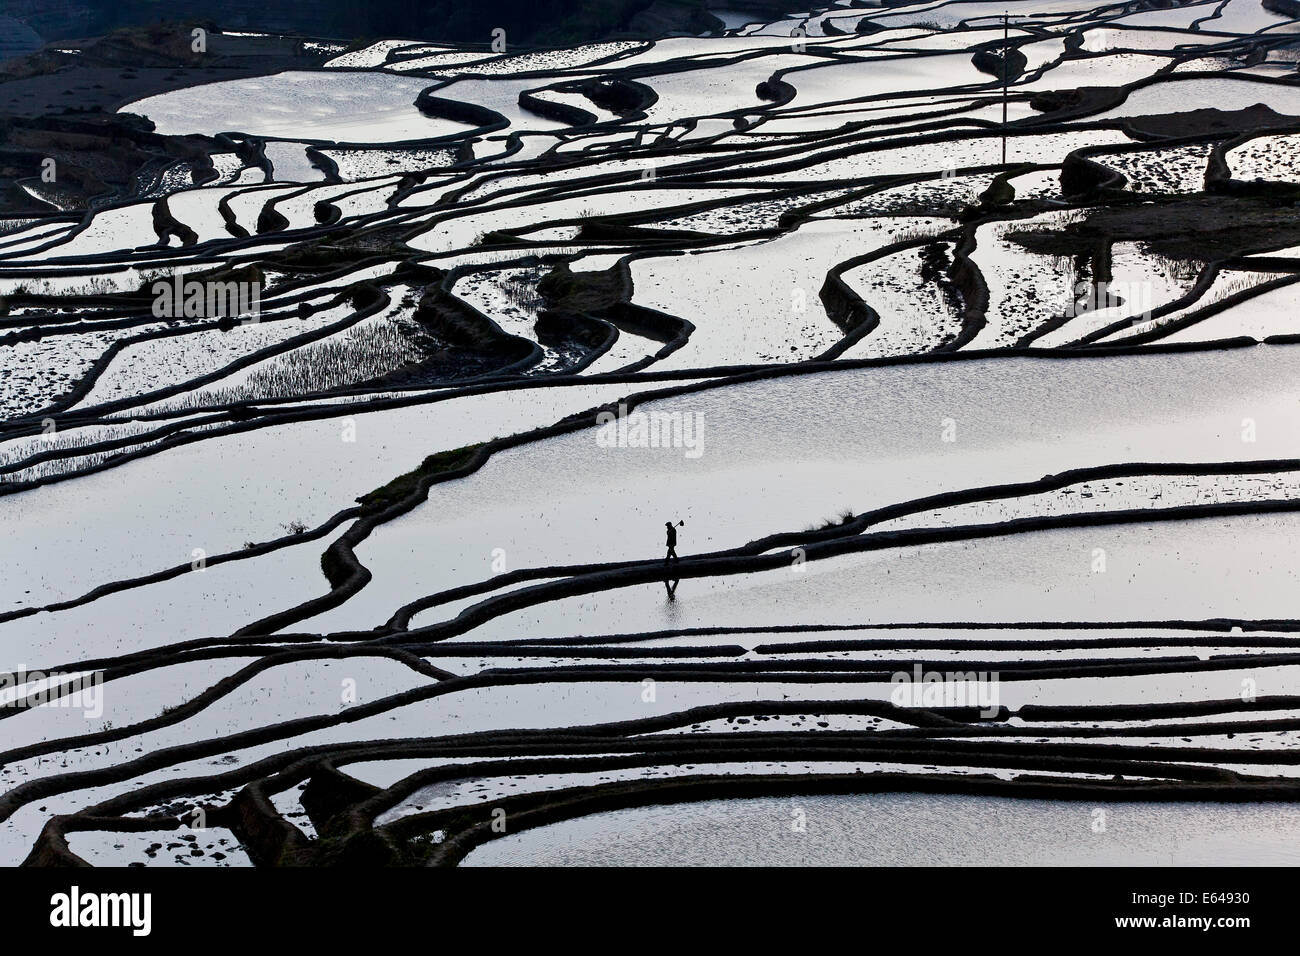 Reflections off water filled rice terraces, Yuanyang County, Honghe, Yunnan Province, China Stock Photo